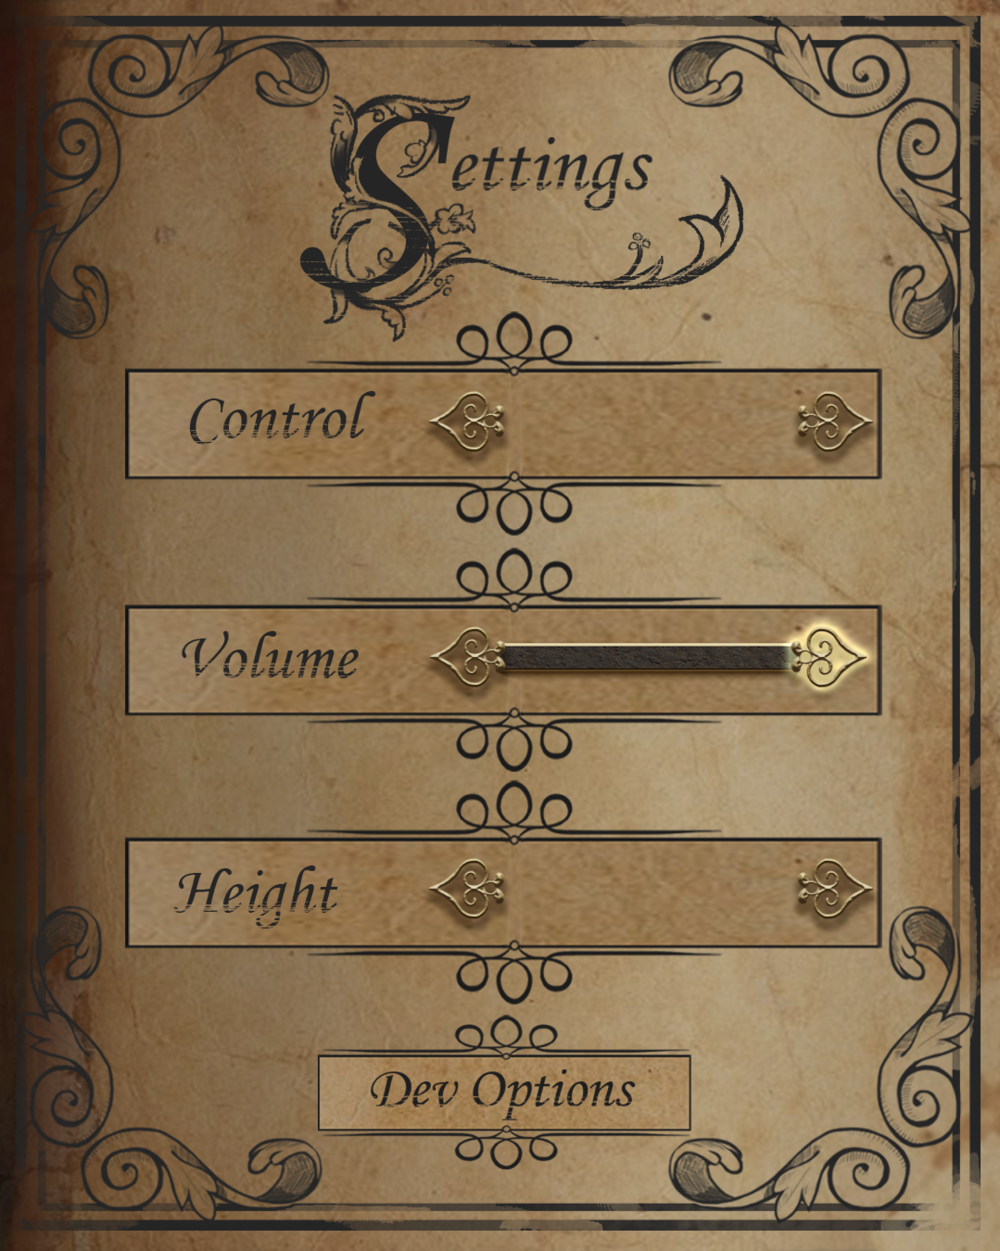 Settings page of the spell book in Mageguard: The Last Grimoire